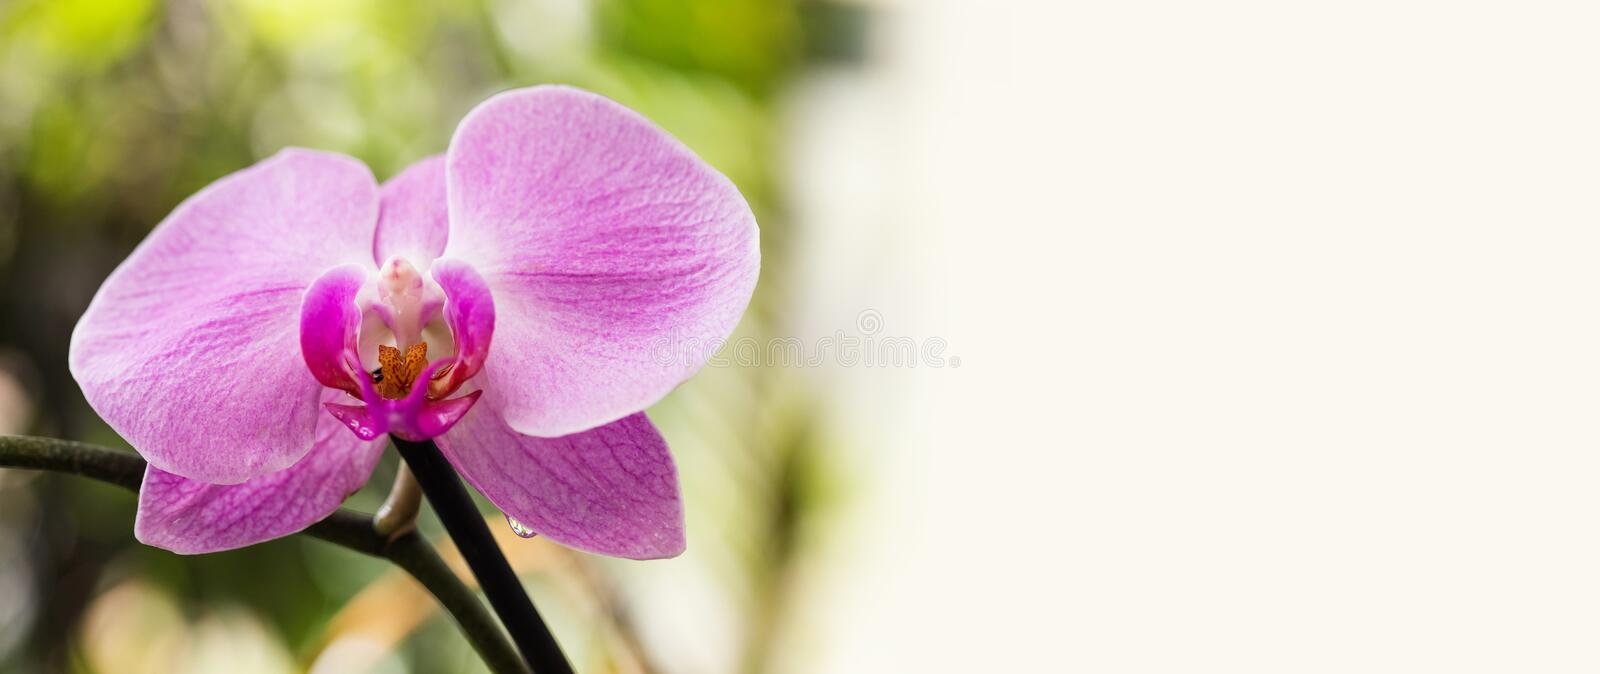 Beautiful purple Orchid flowers, macro view selective focus. Blooming orchids plant exotic nature landscape. Copy space stock photo